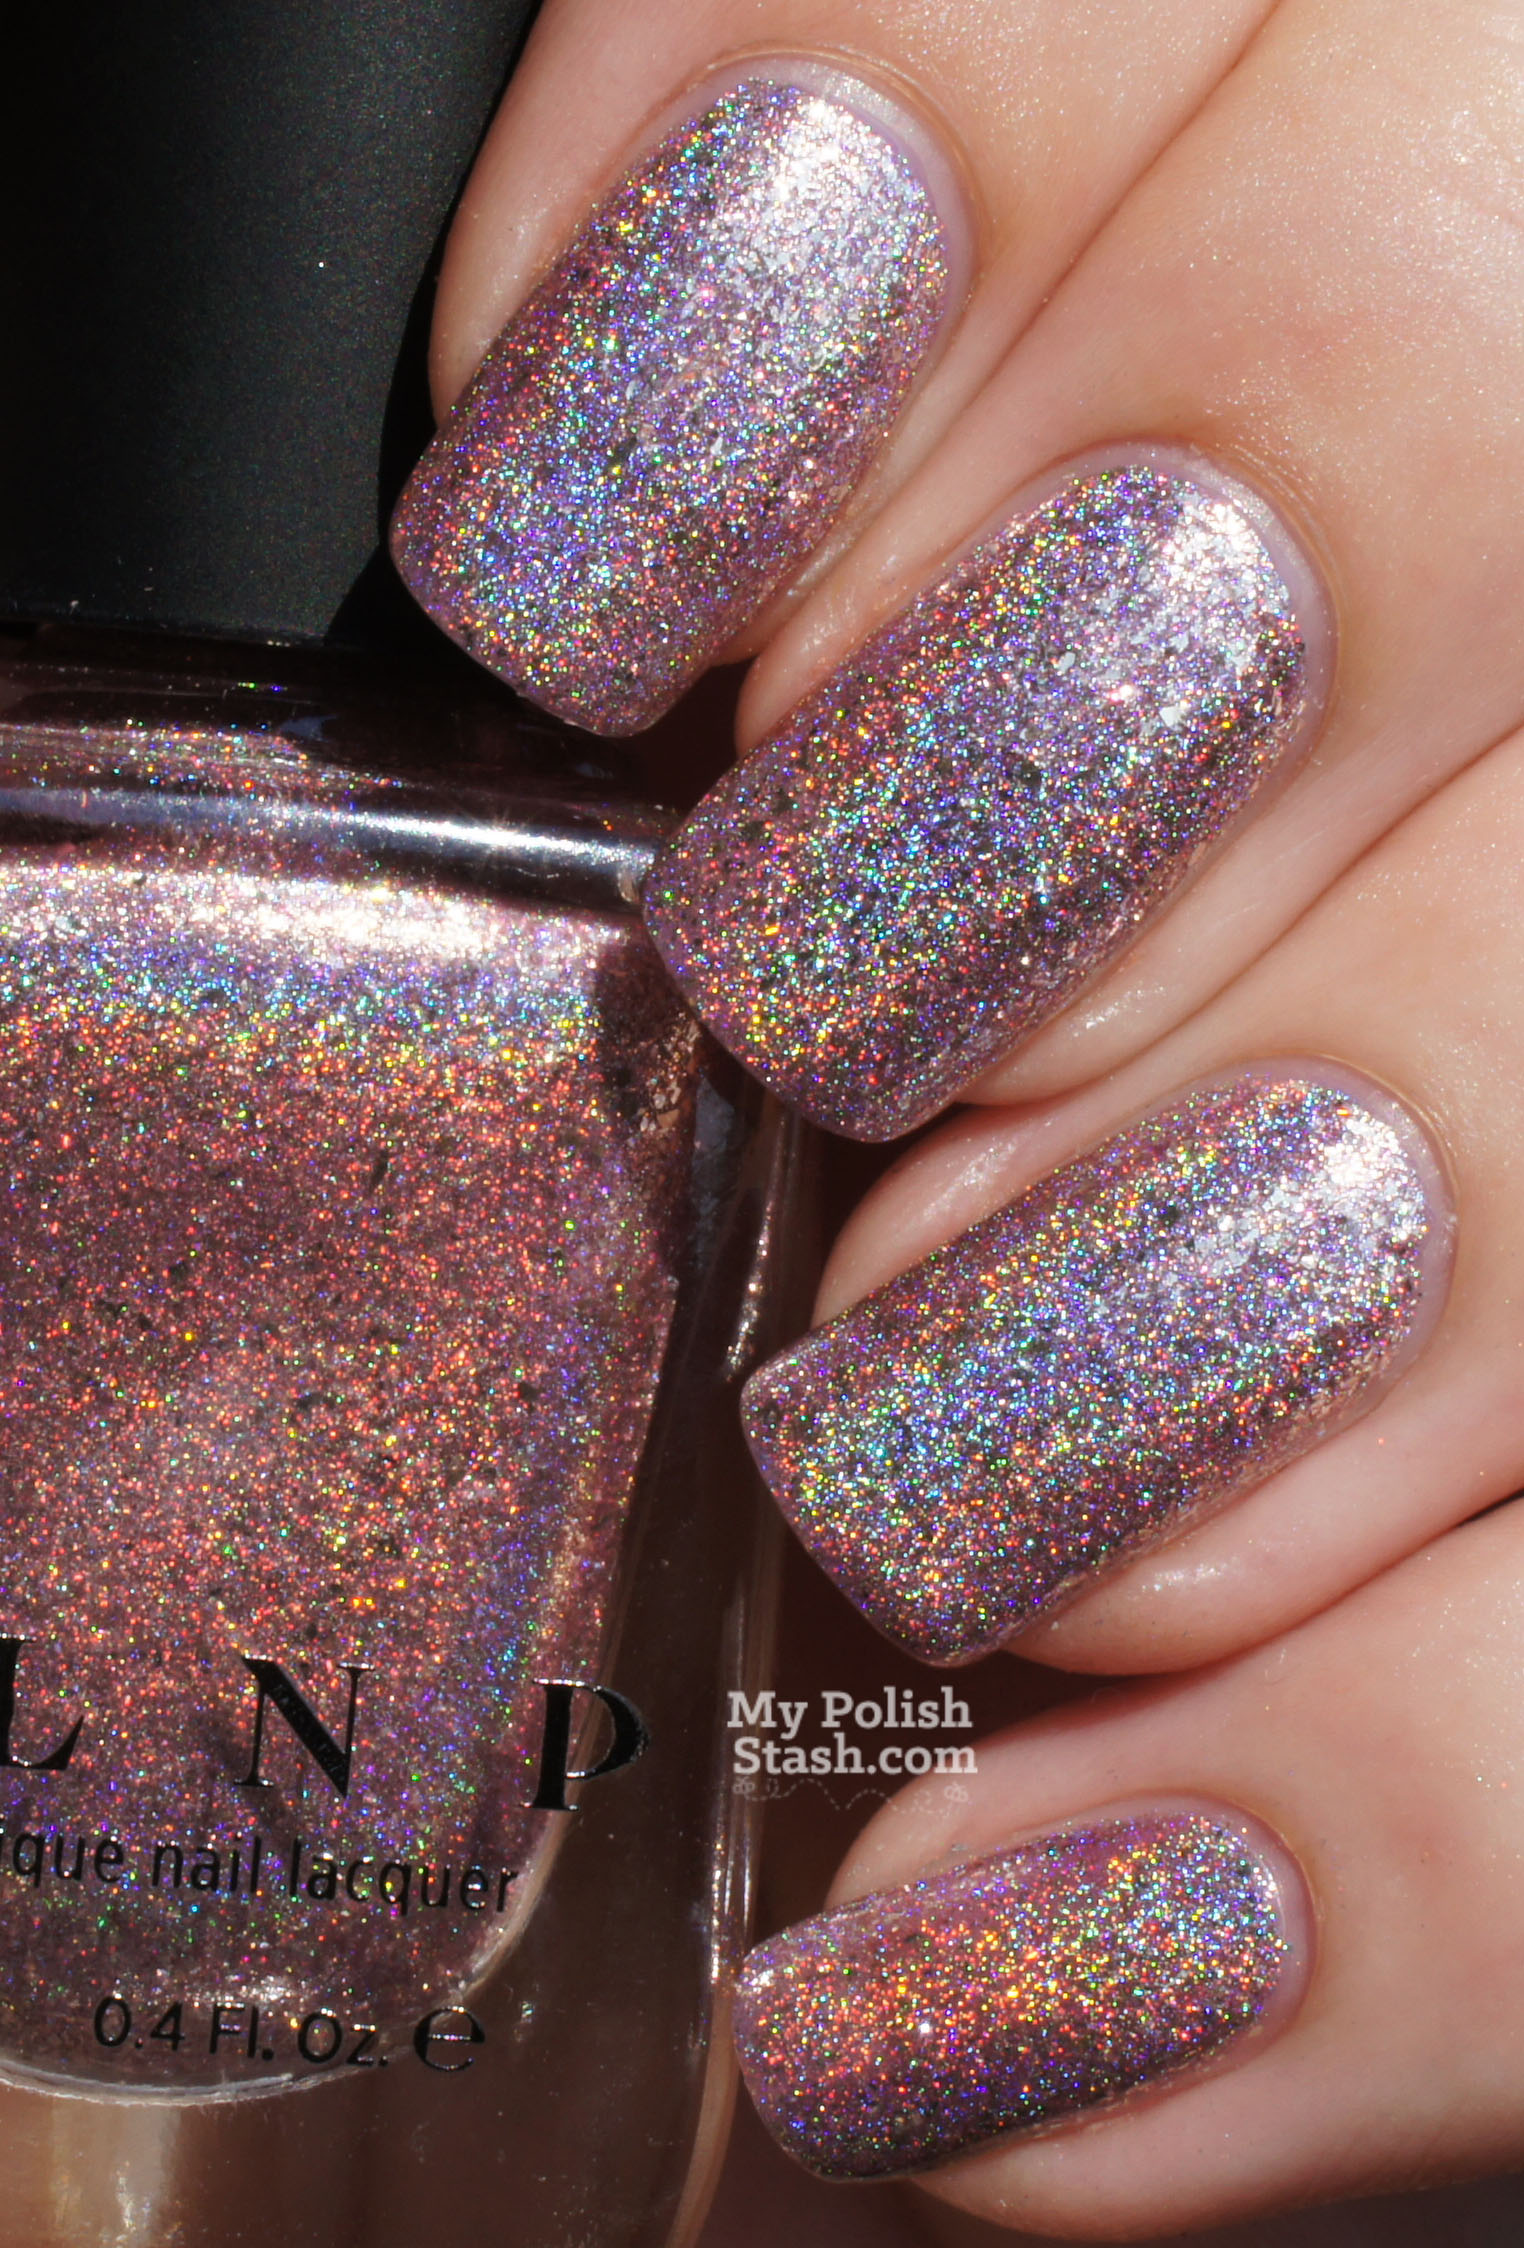 ILNP-Pink-Mimosas-swatch-4